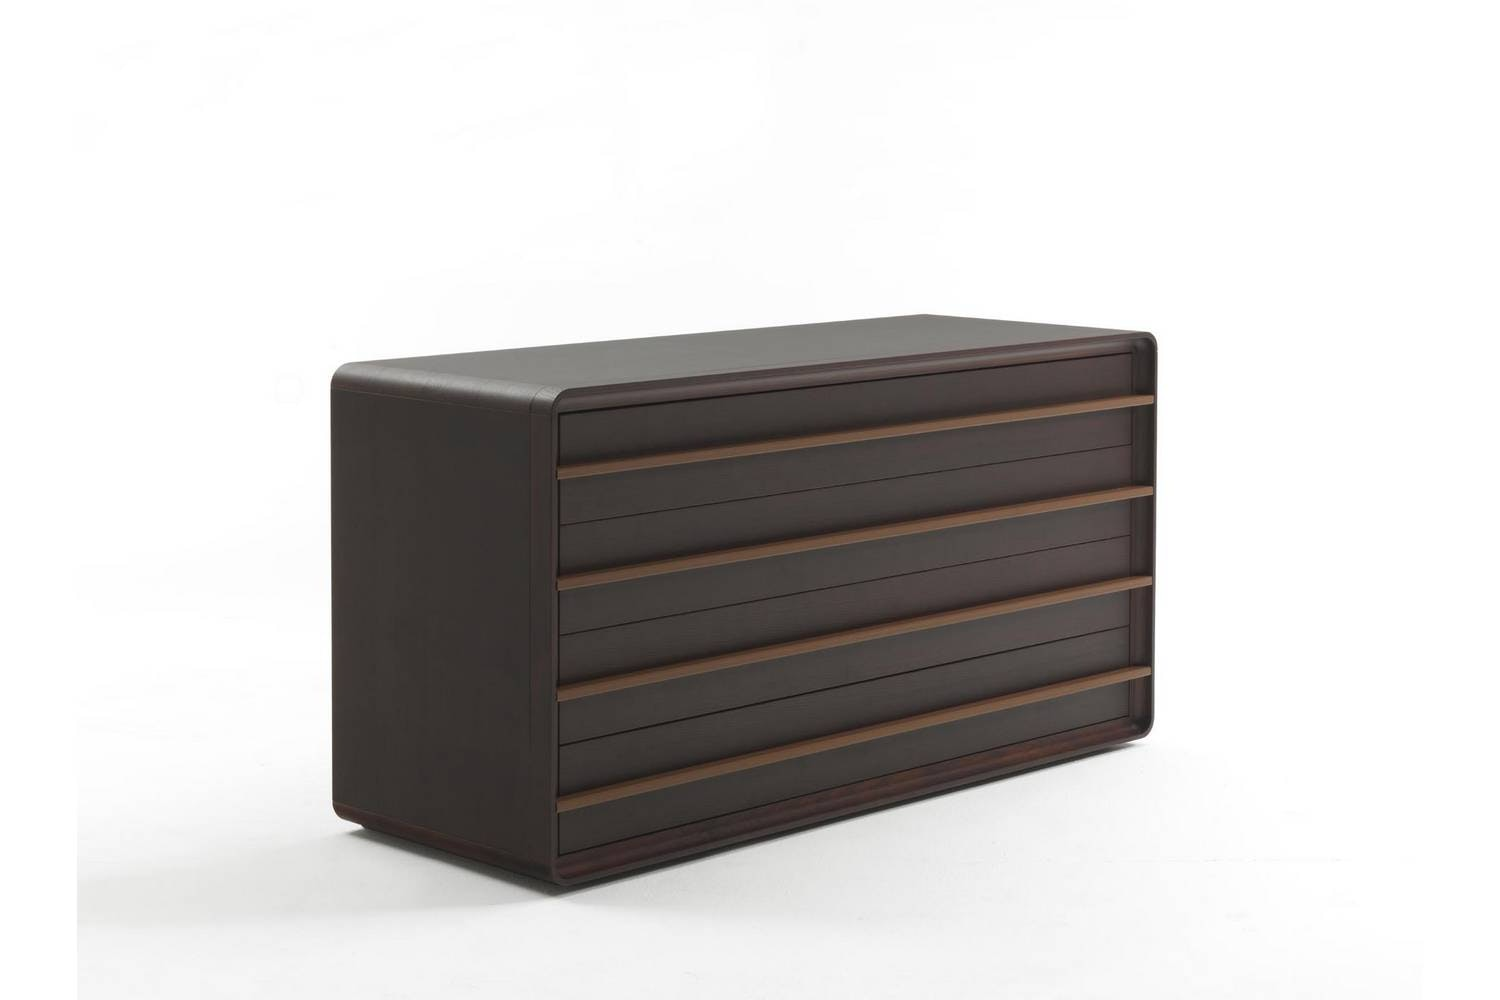 Aura Chest of Drawers by Marelli & Molteni for Porada